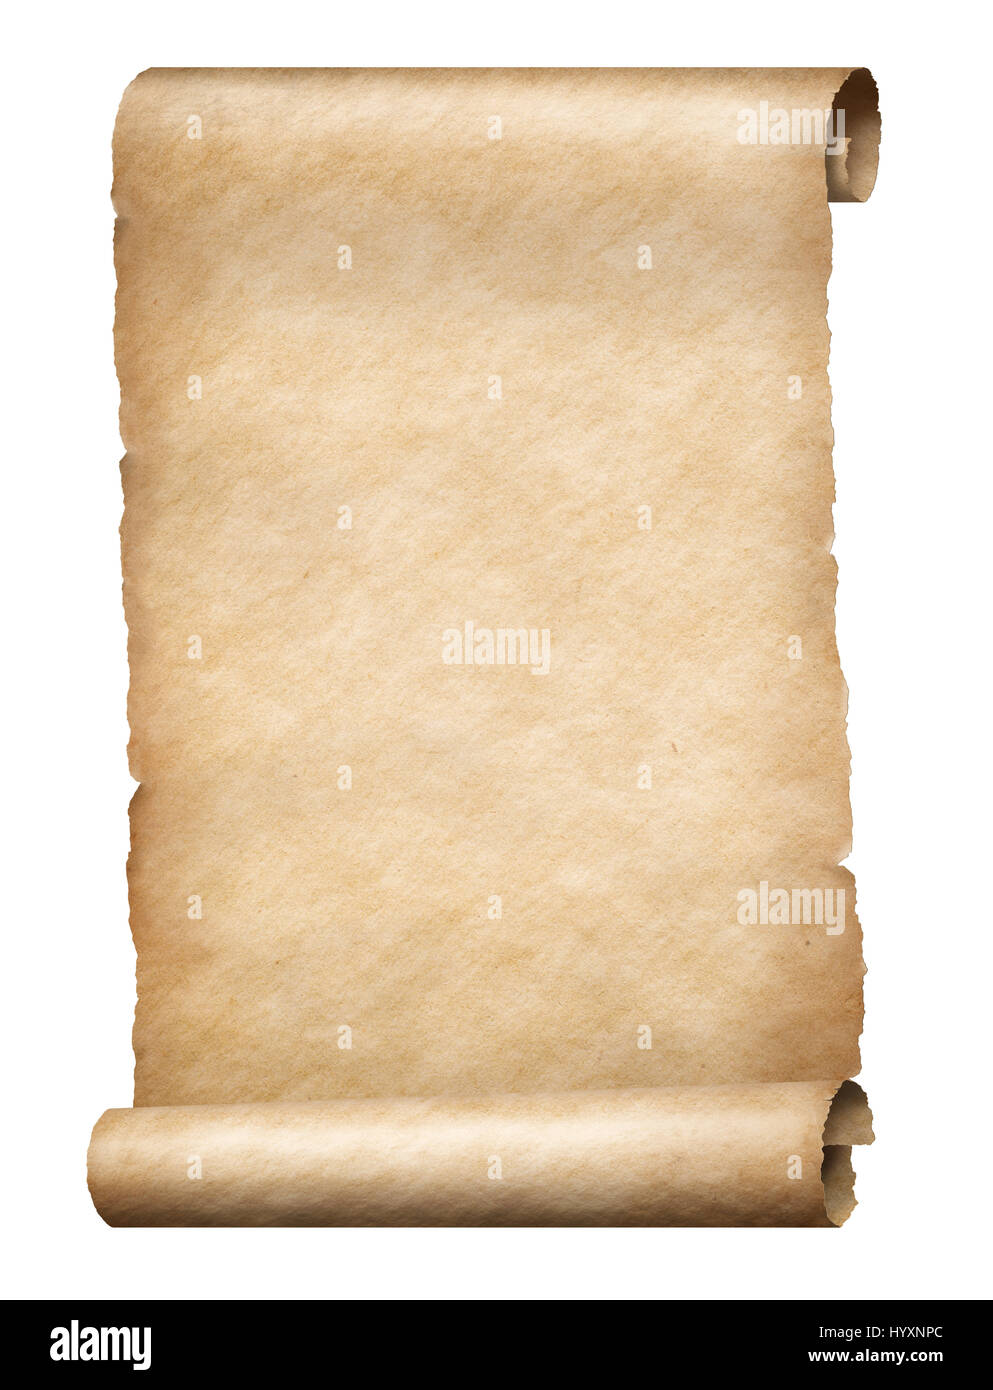 Parchment scroll - Stock Image